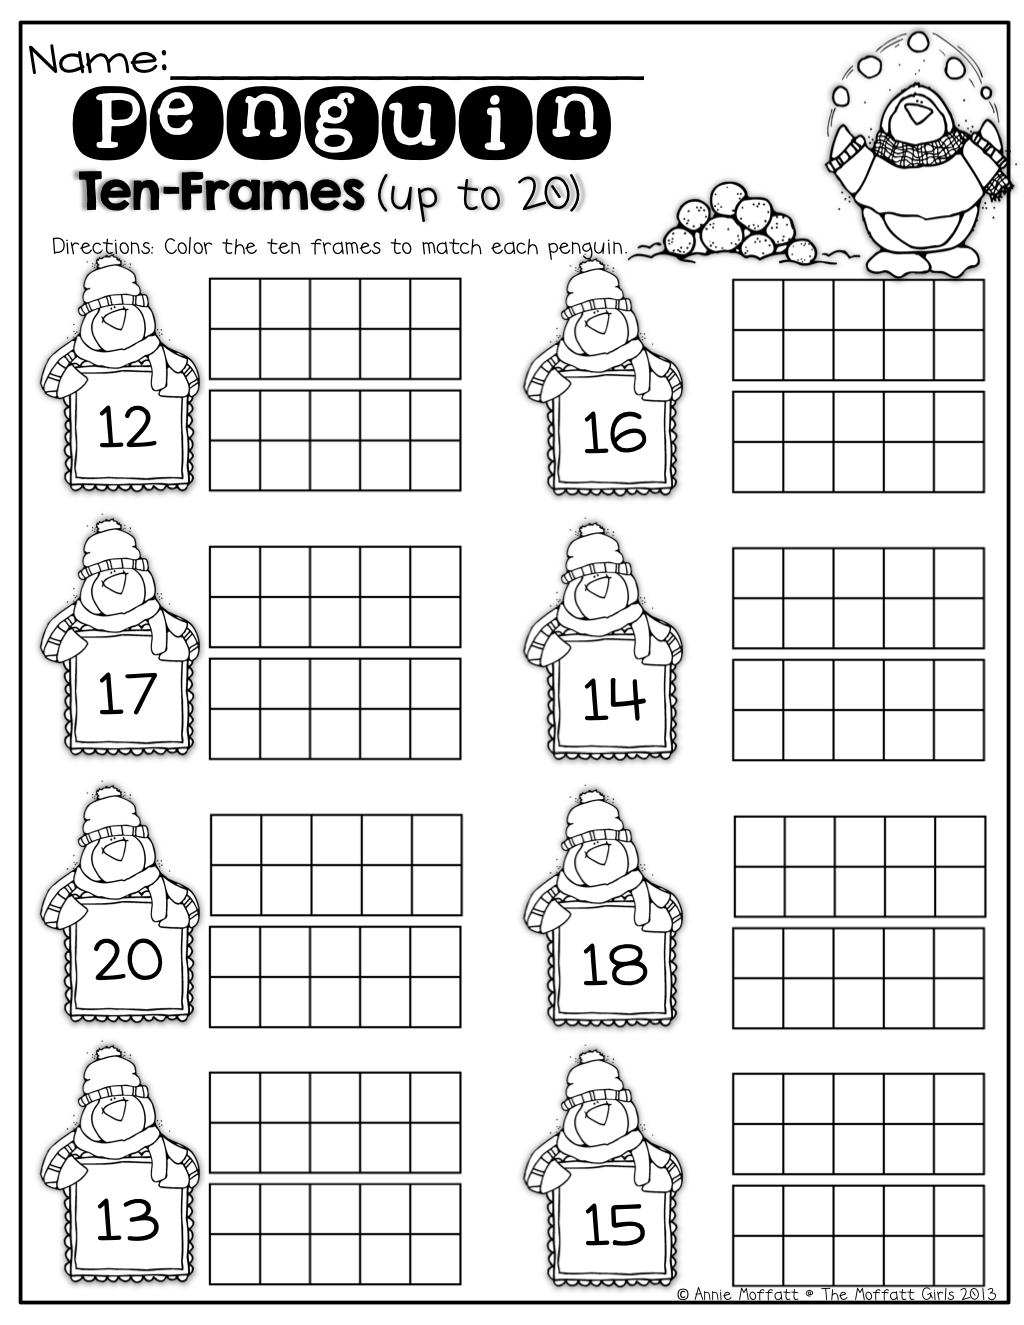 Penguin Ten Frames Up To 20